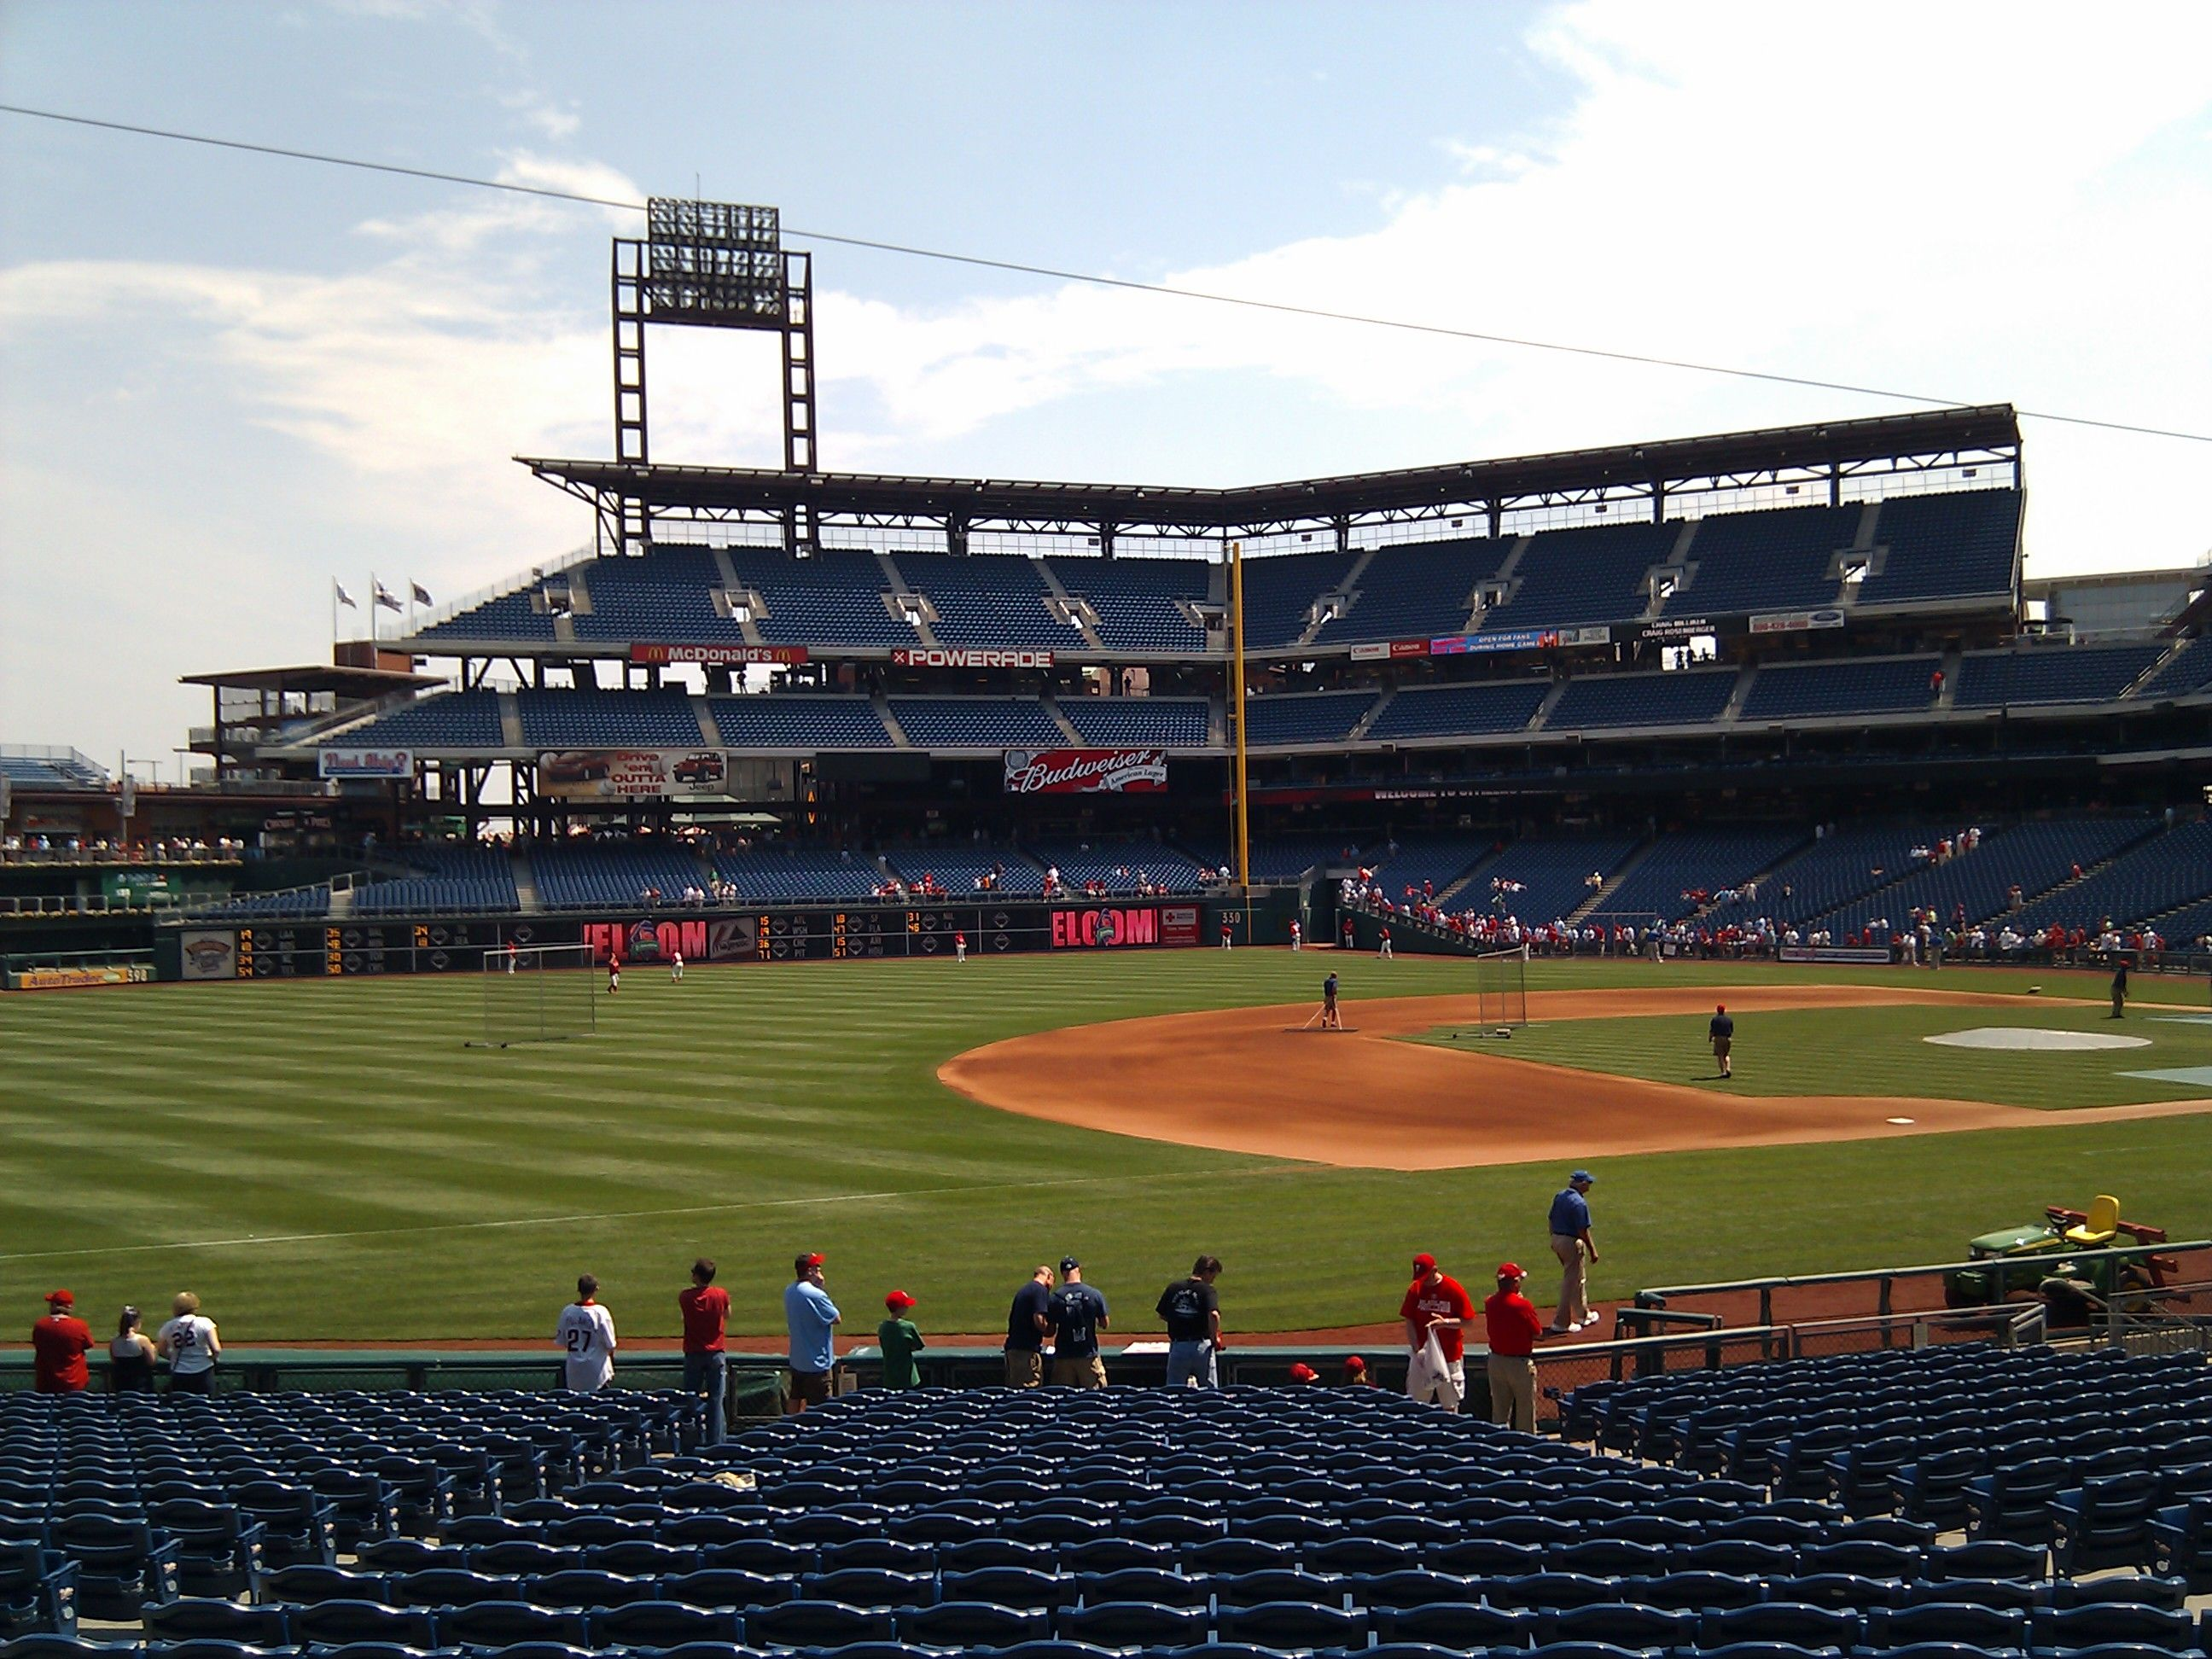 Citizens Bank Park Section 134 Row 25 Seat 10